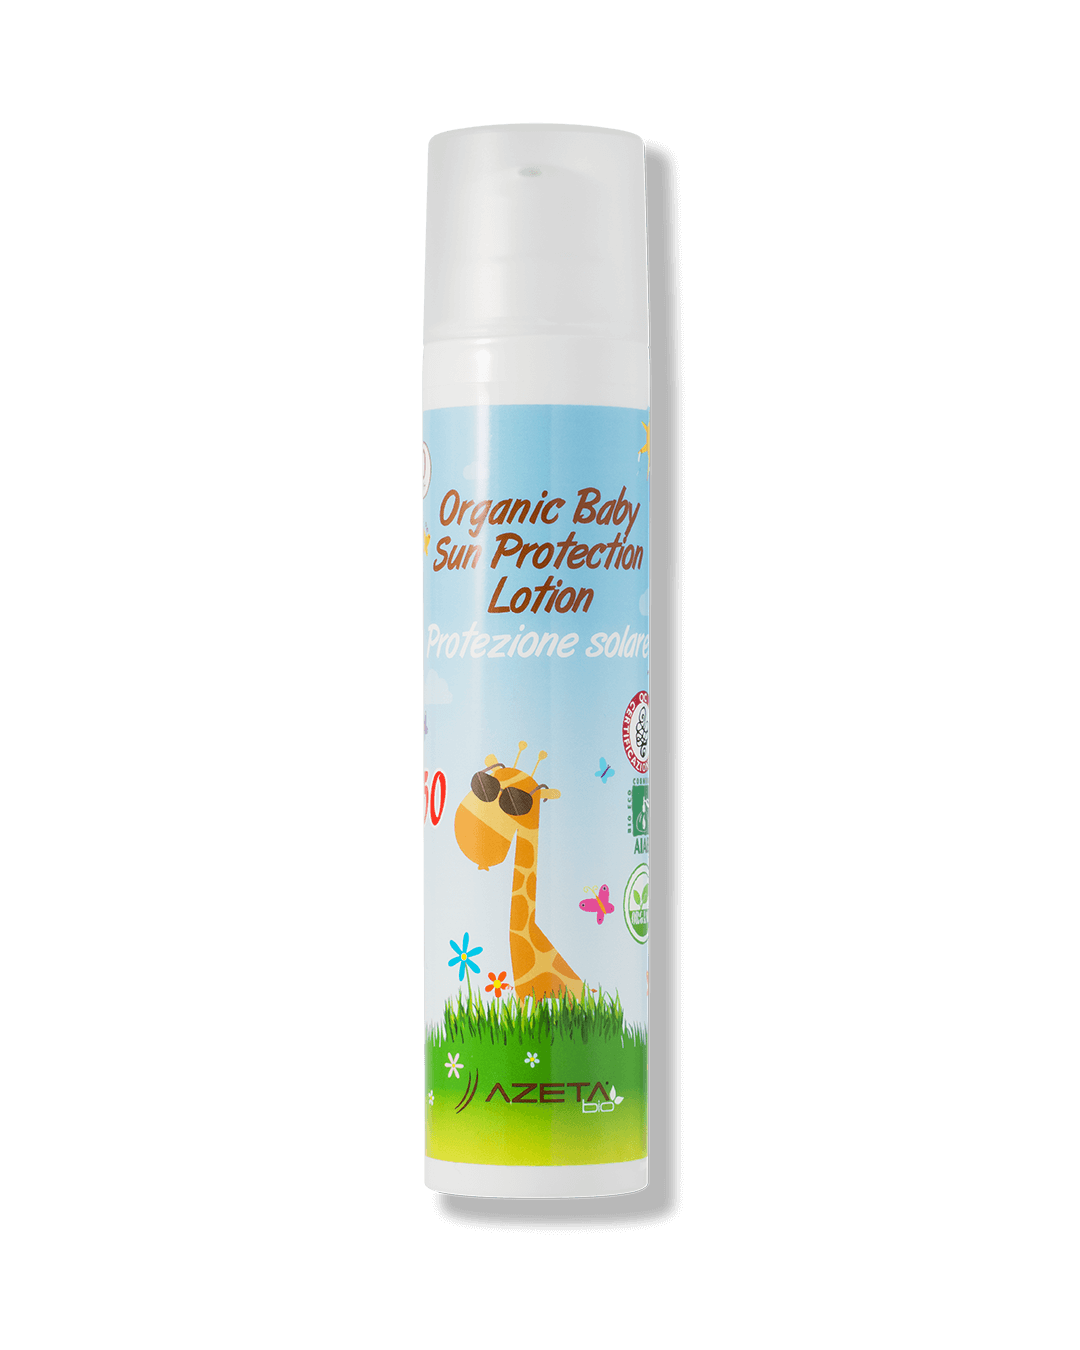 Organic Baby Sun Protection Lotion SPF 50